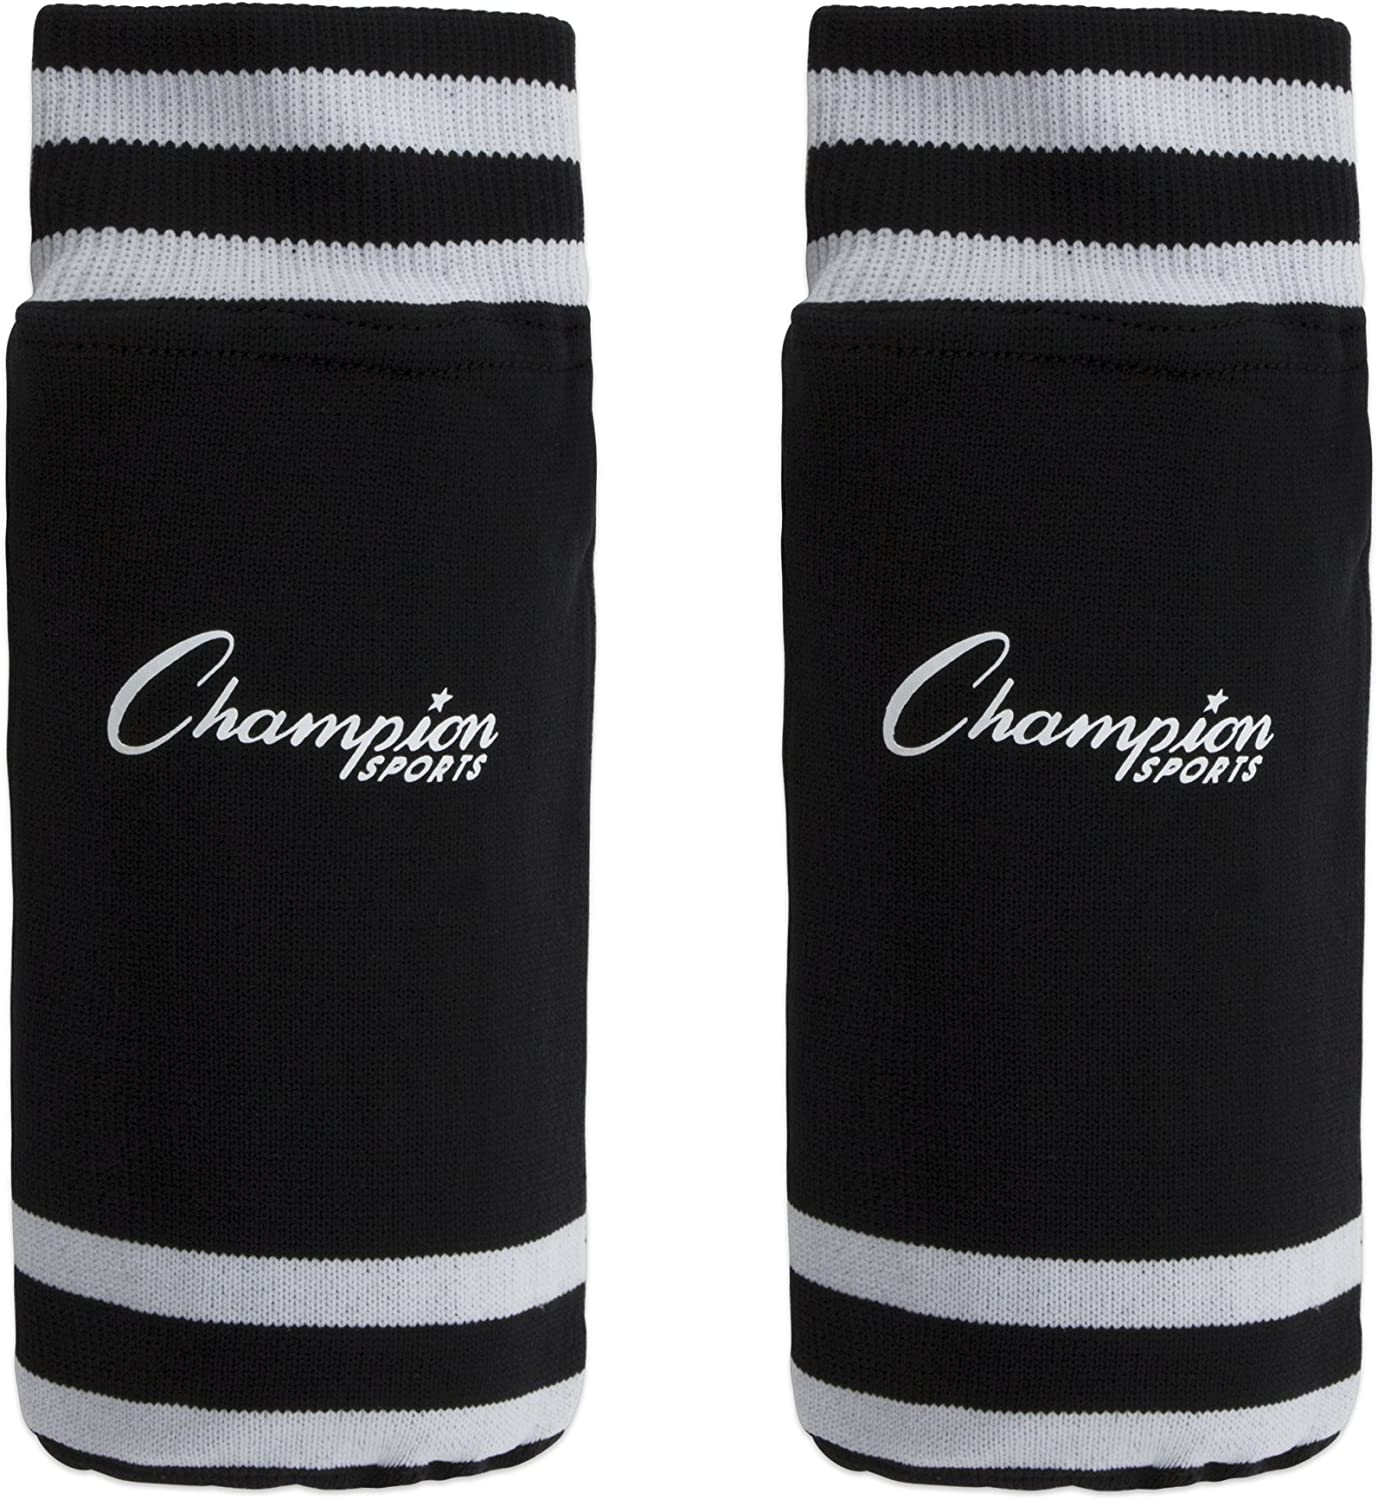 Champion Sports SL4B Youth Sock Style Soccer Shin Guards - Ages 4-6, Black, Small : Soccer Shin Guards : Clothing